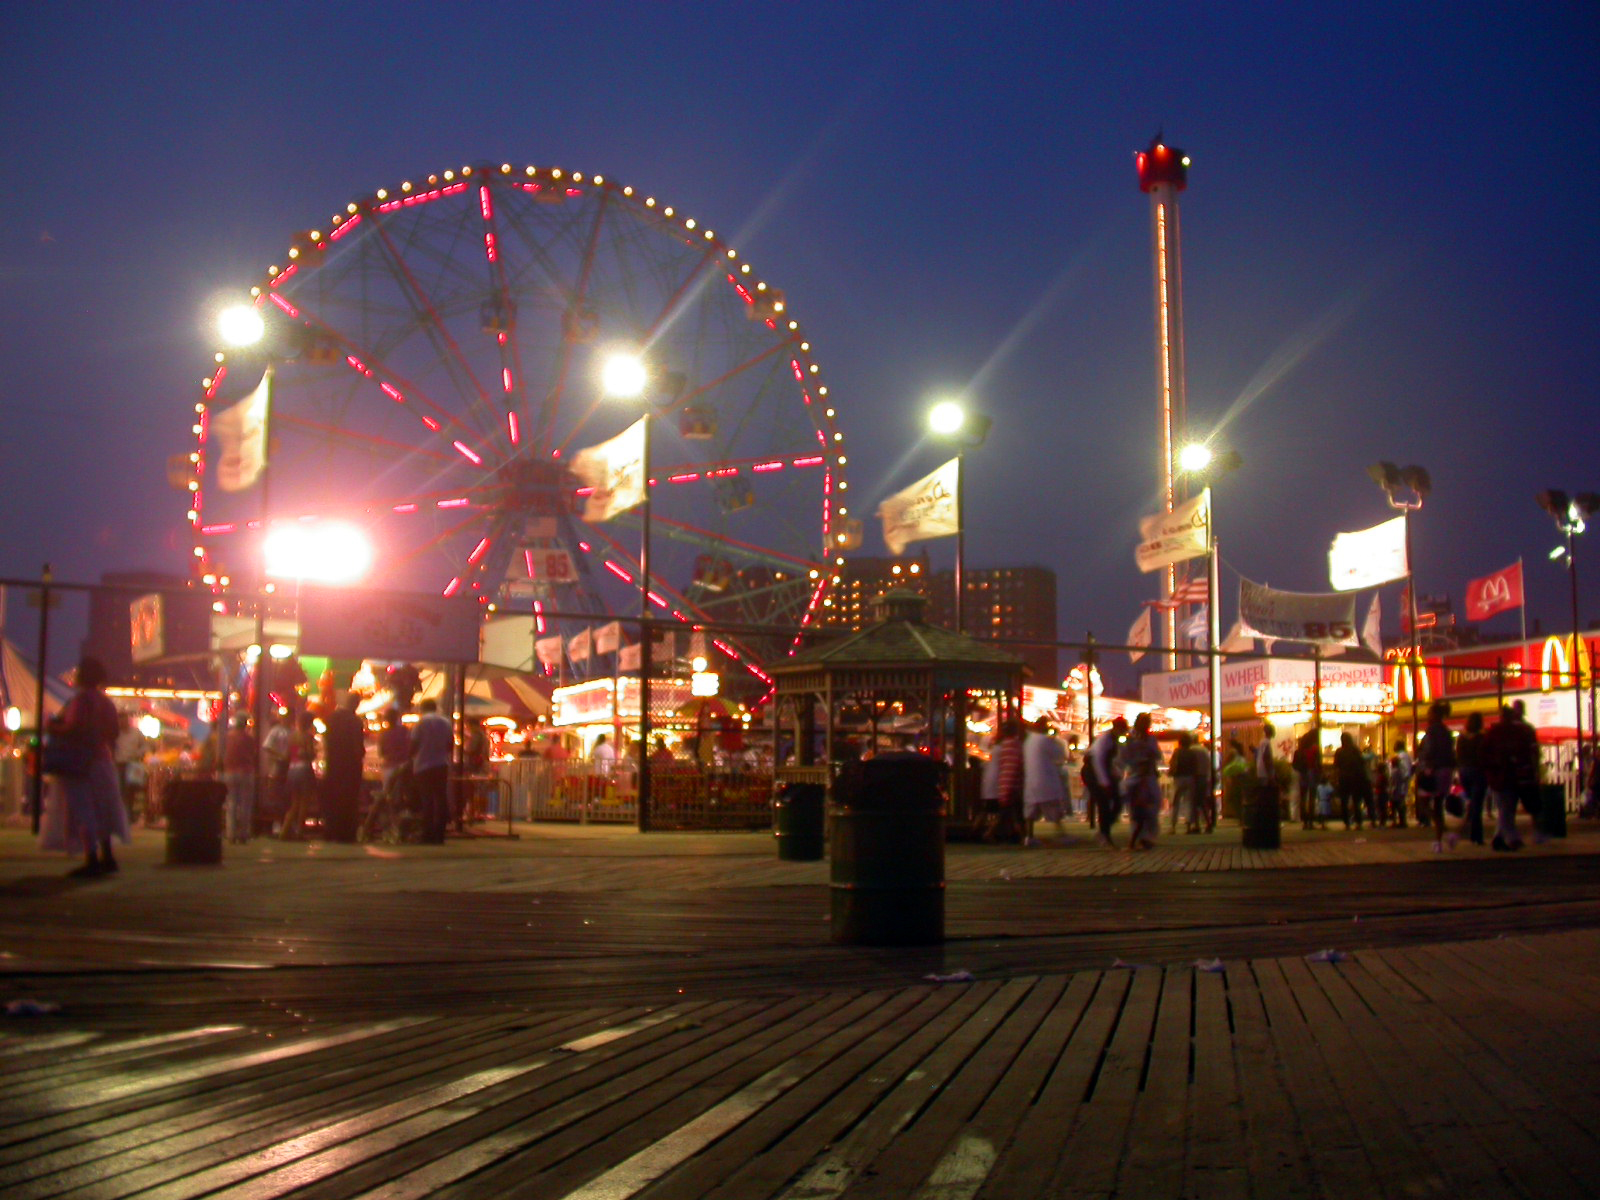 FileConey Island Astroland at night 2005jpg   Wikimedia Commons 1600x1200